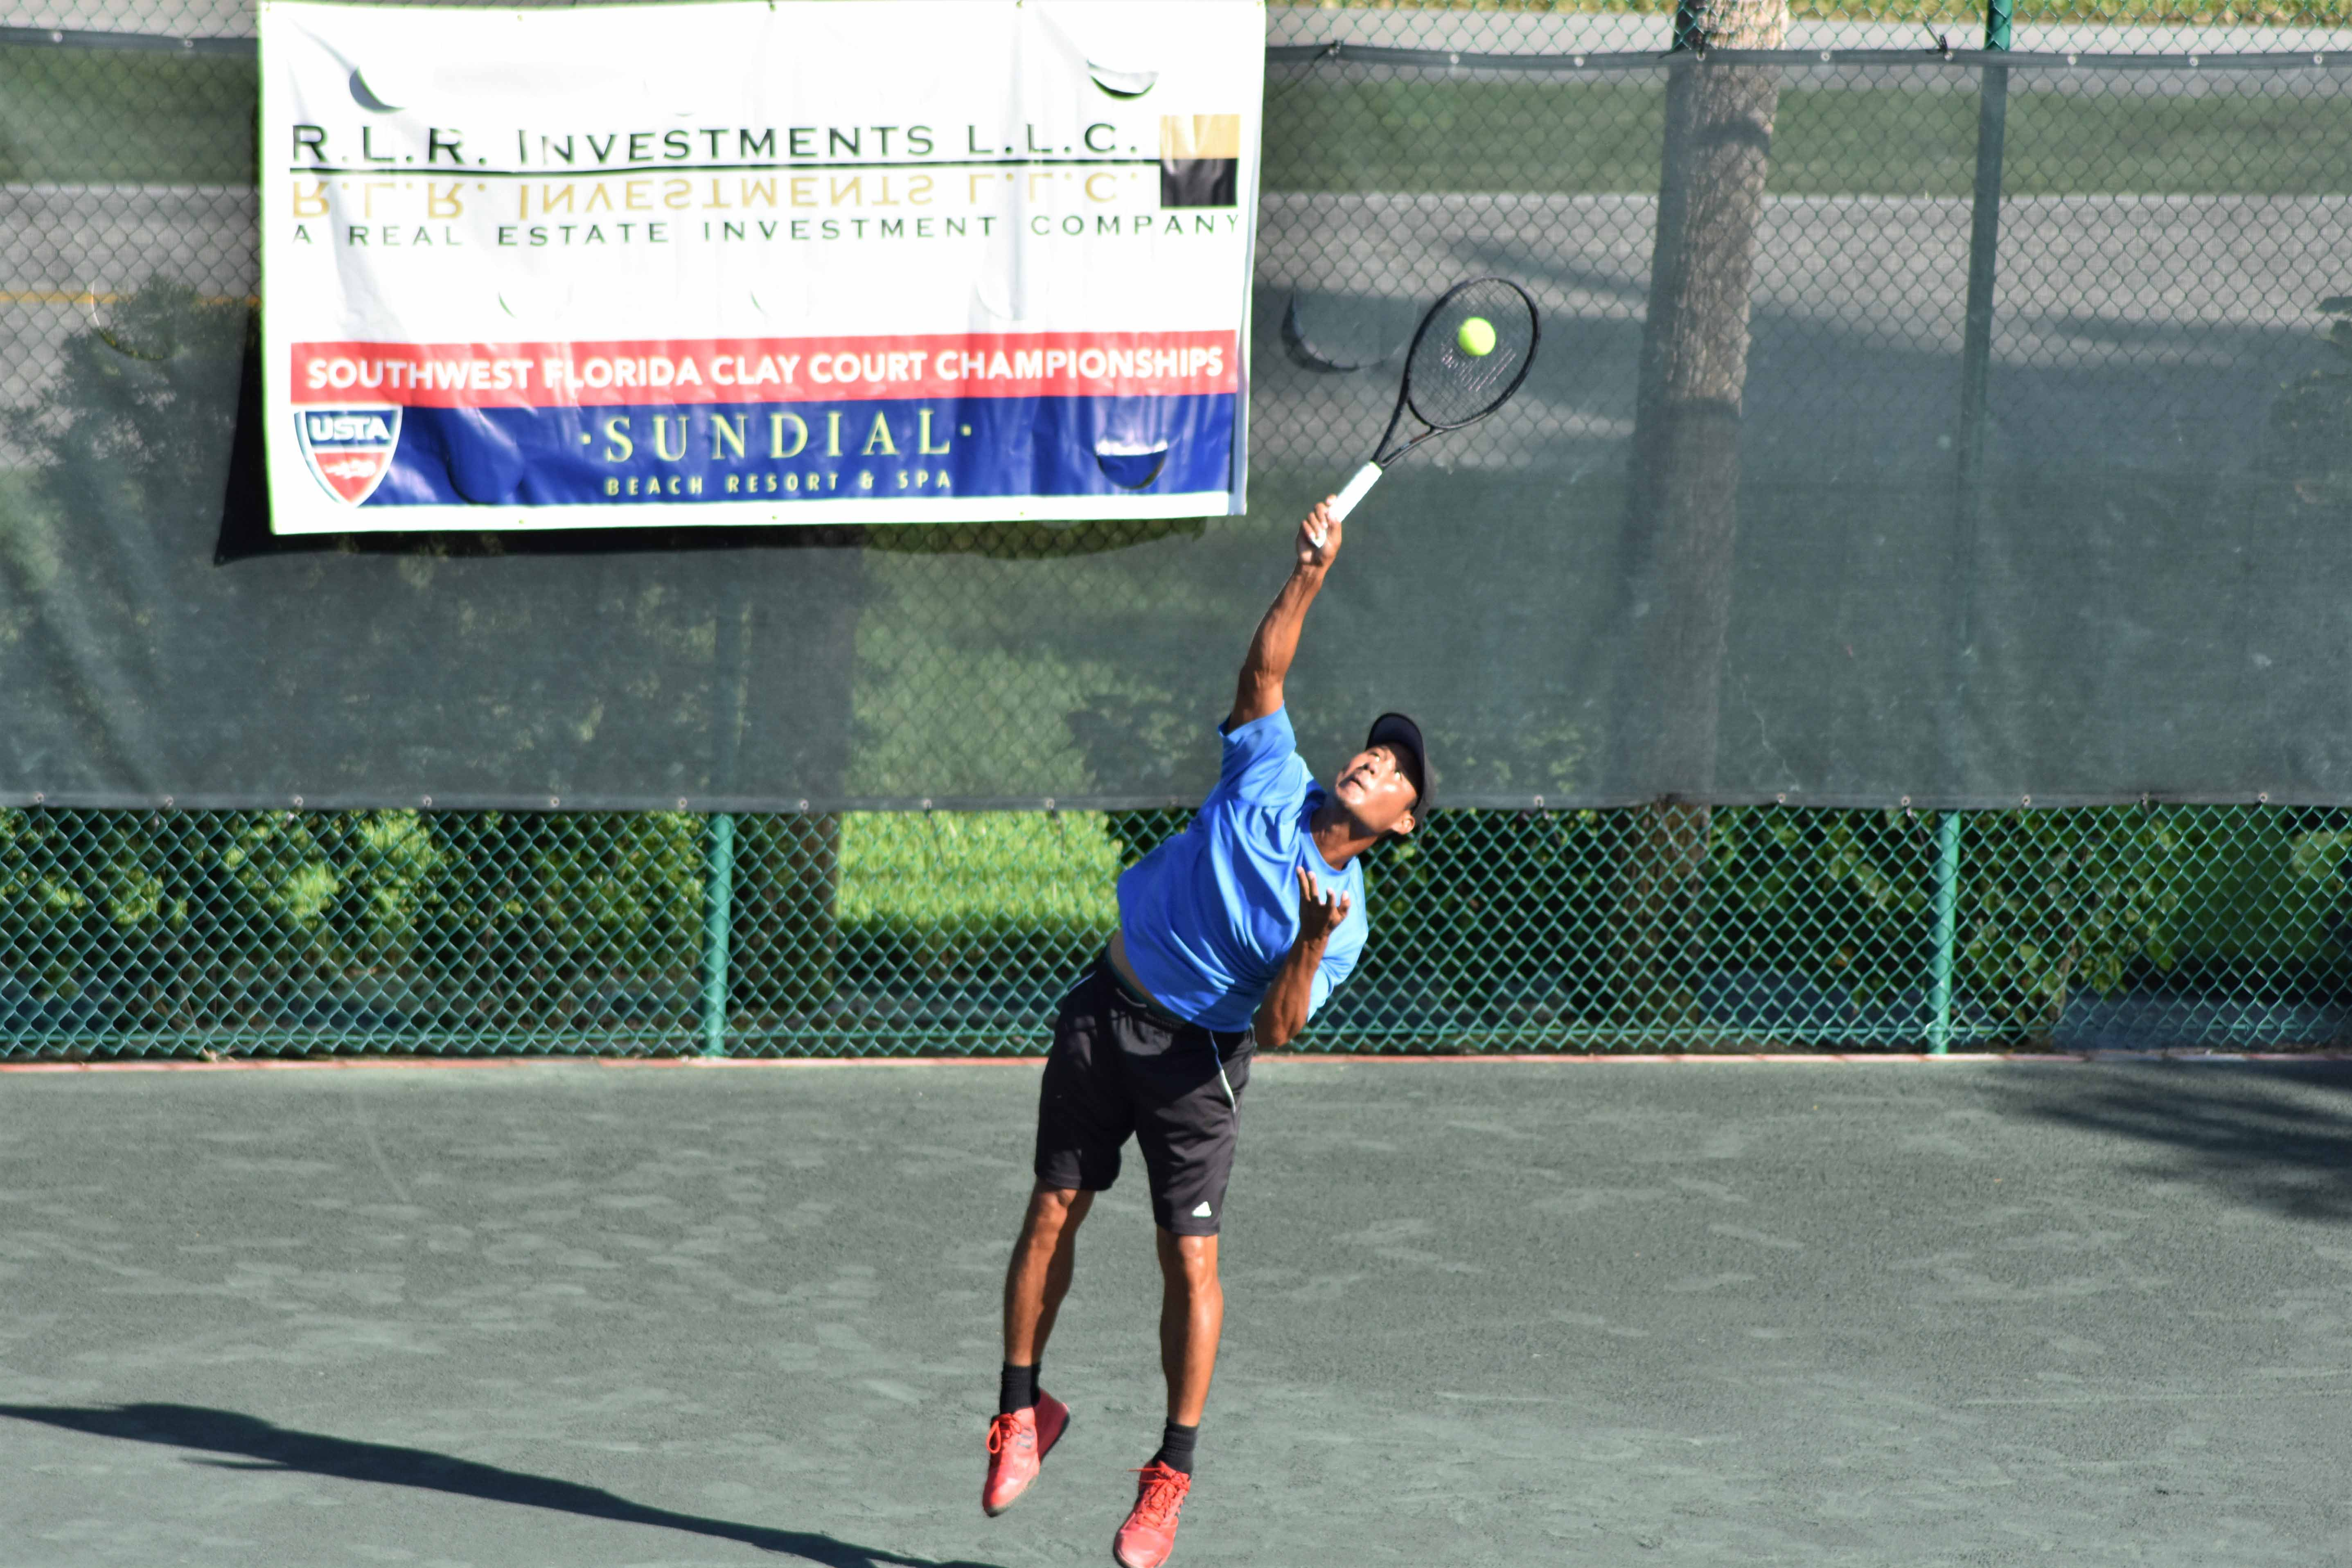 2018 swfl clay court championships sundial